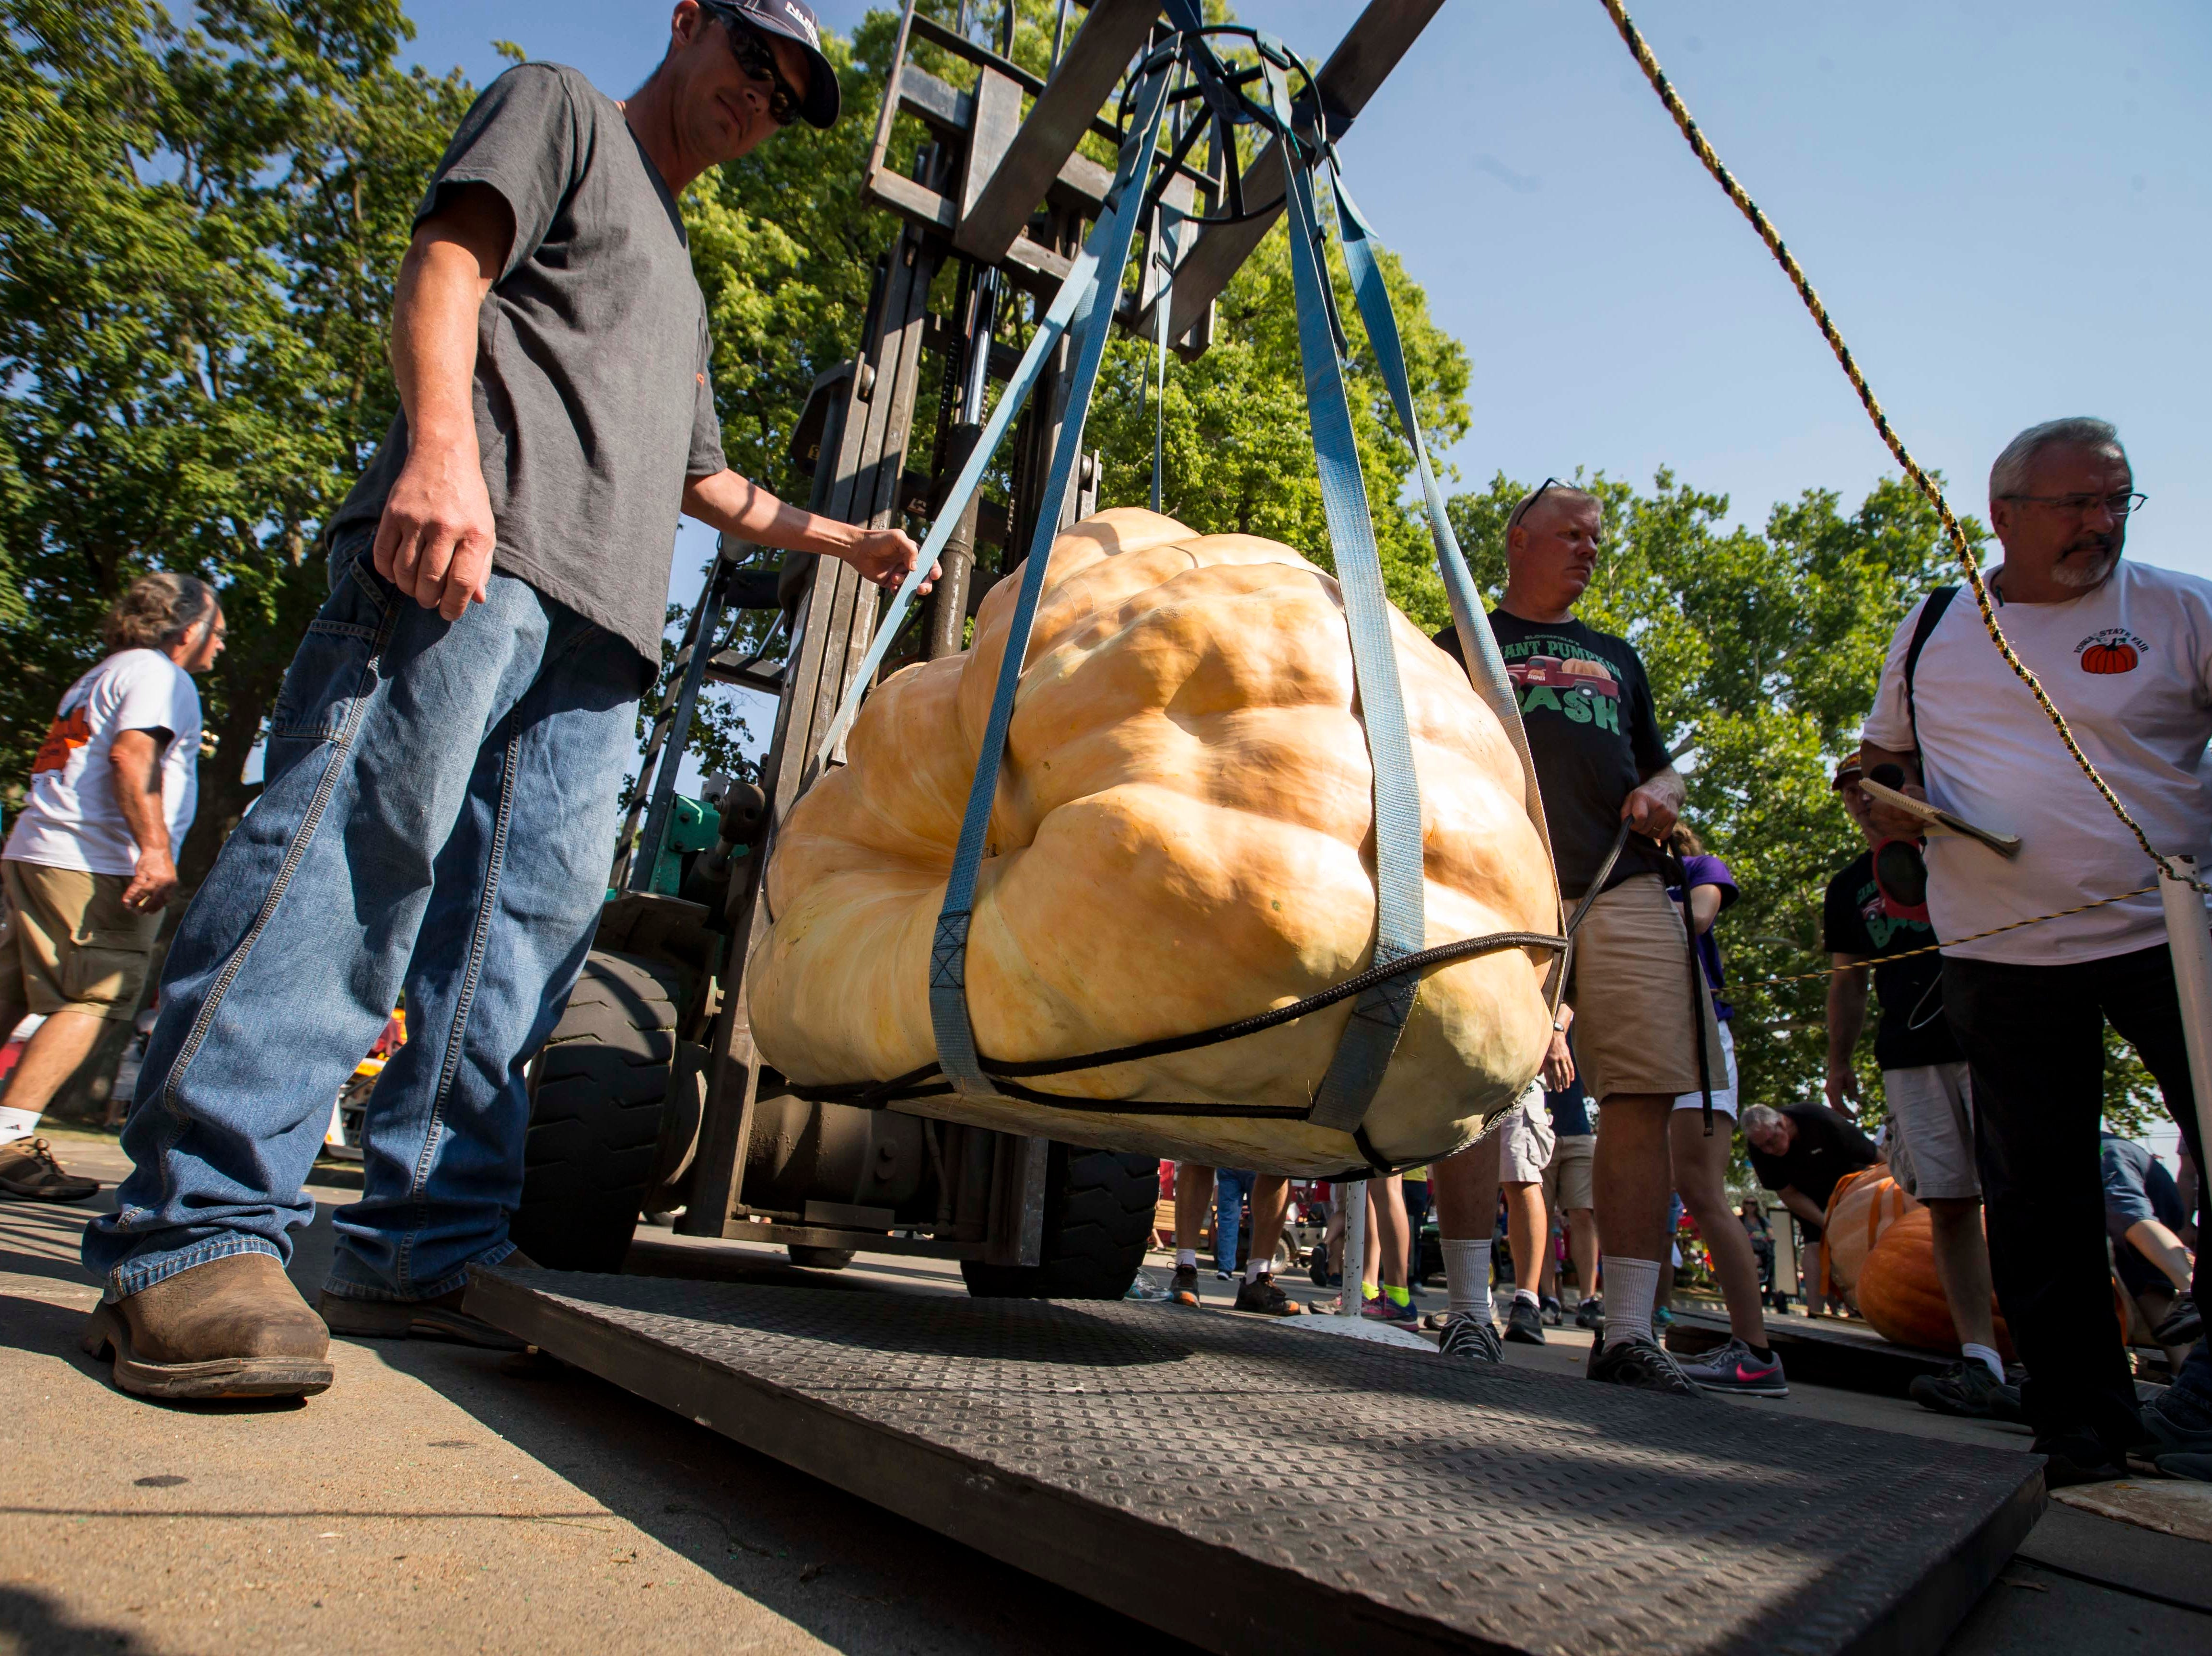 Scott Carter of Albia has his pumpkin weighed during the Big Pumpkin contest at the Iowa State Fair Friday, Aug. 10, 2018, in Des Moines, Iowa.